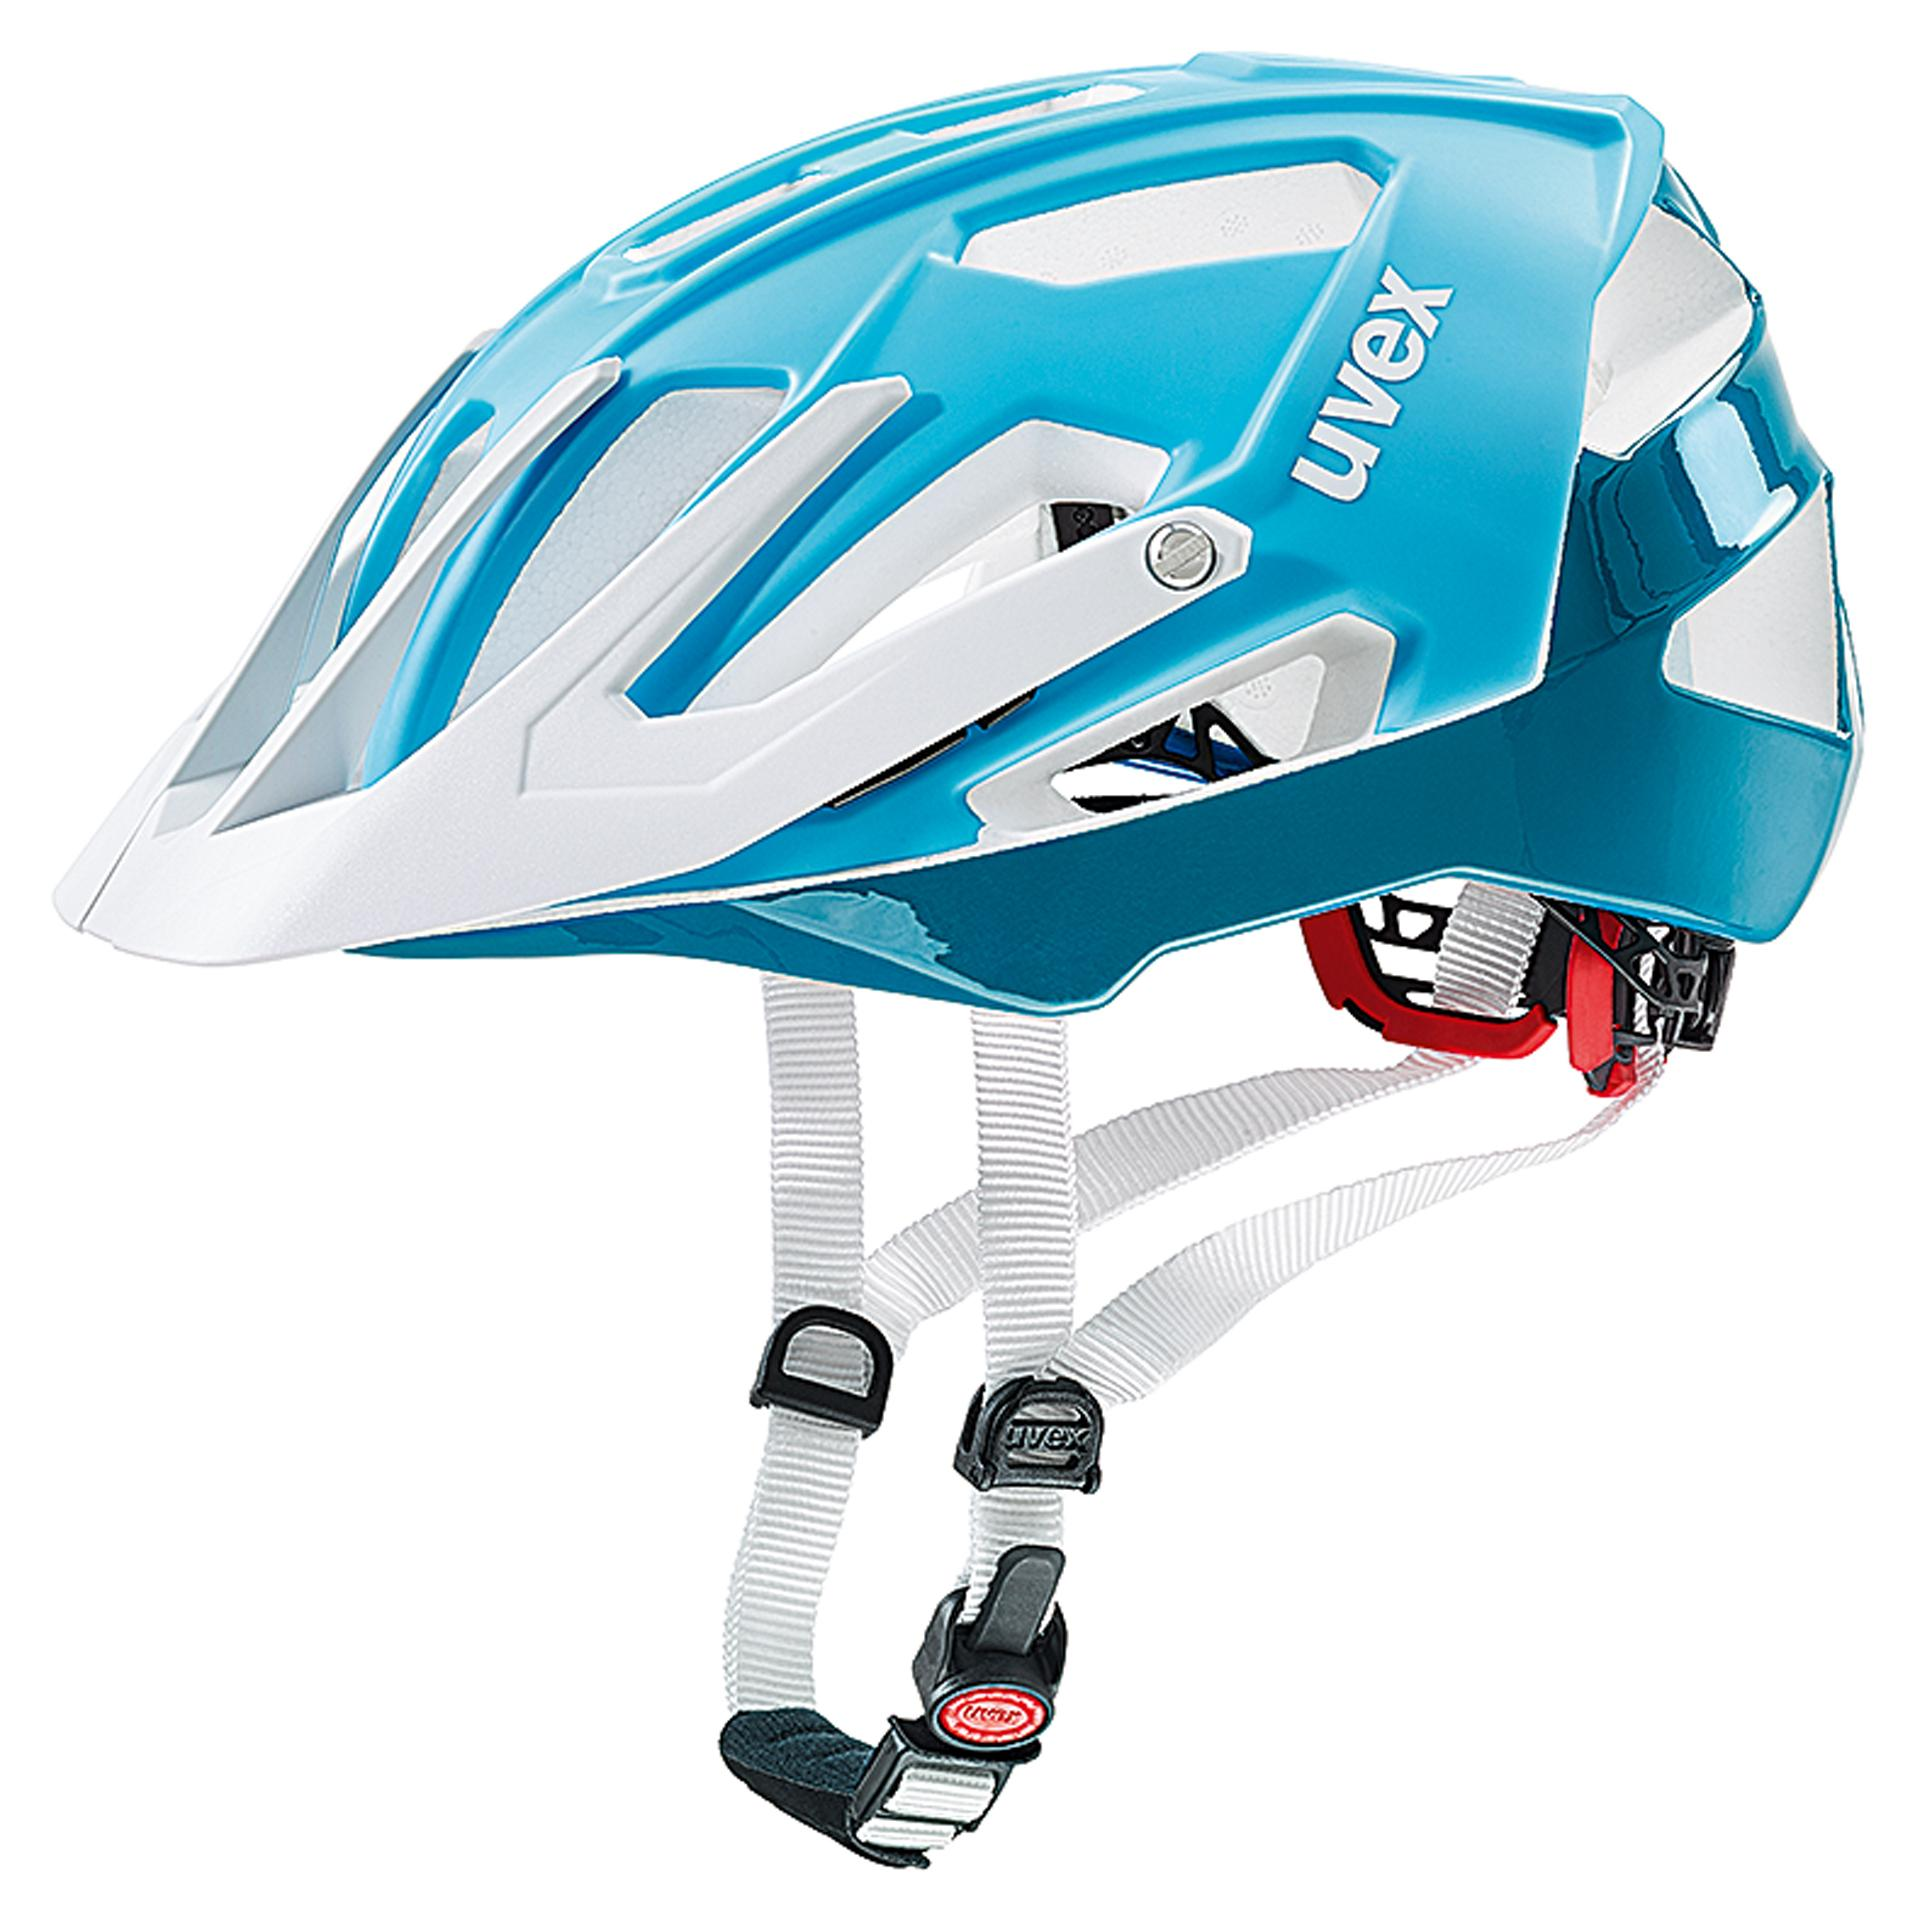 Uvex Fietshelm unisex Blauw Wit / UV Quatro Lightblue White